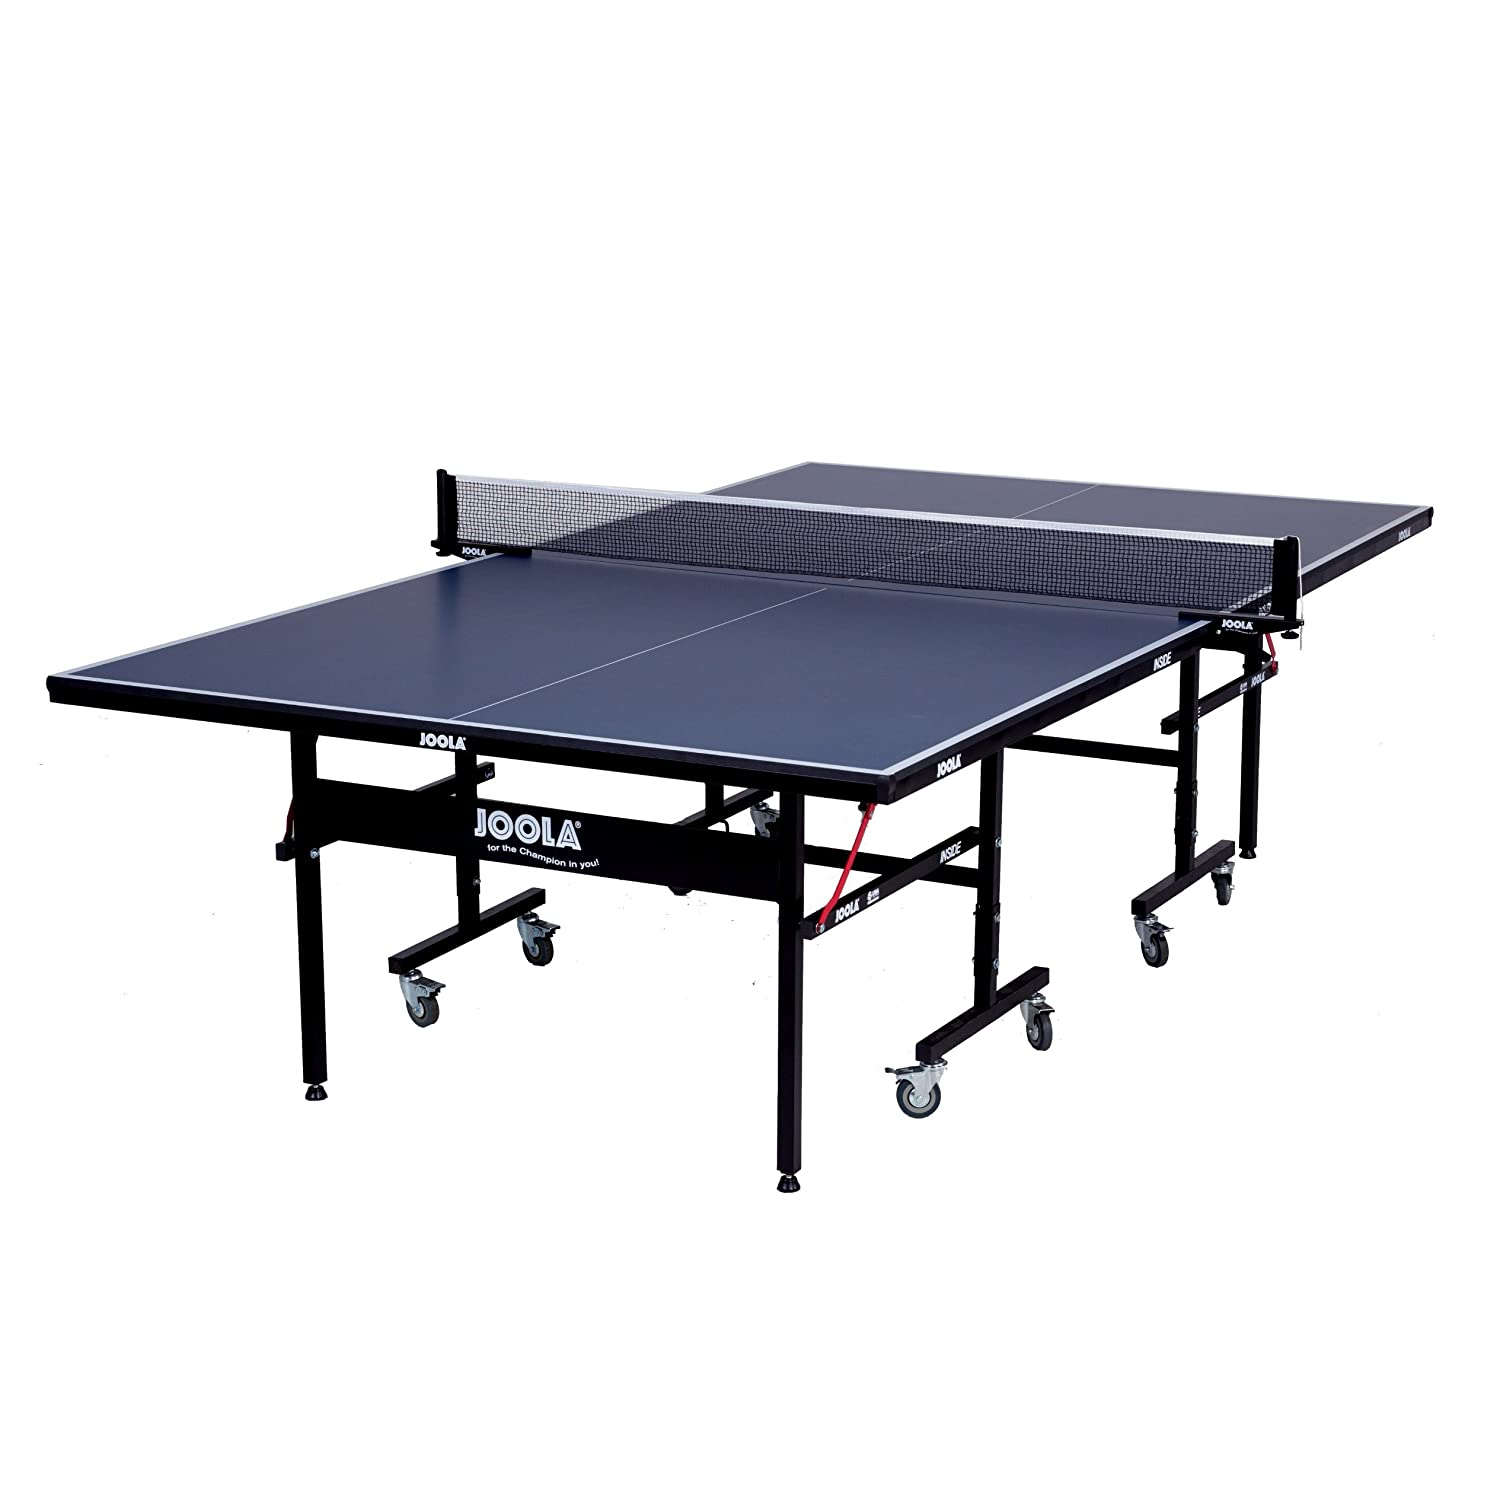 JOOLA Inside 15mm Table Tennis Table with Net Set